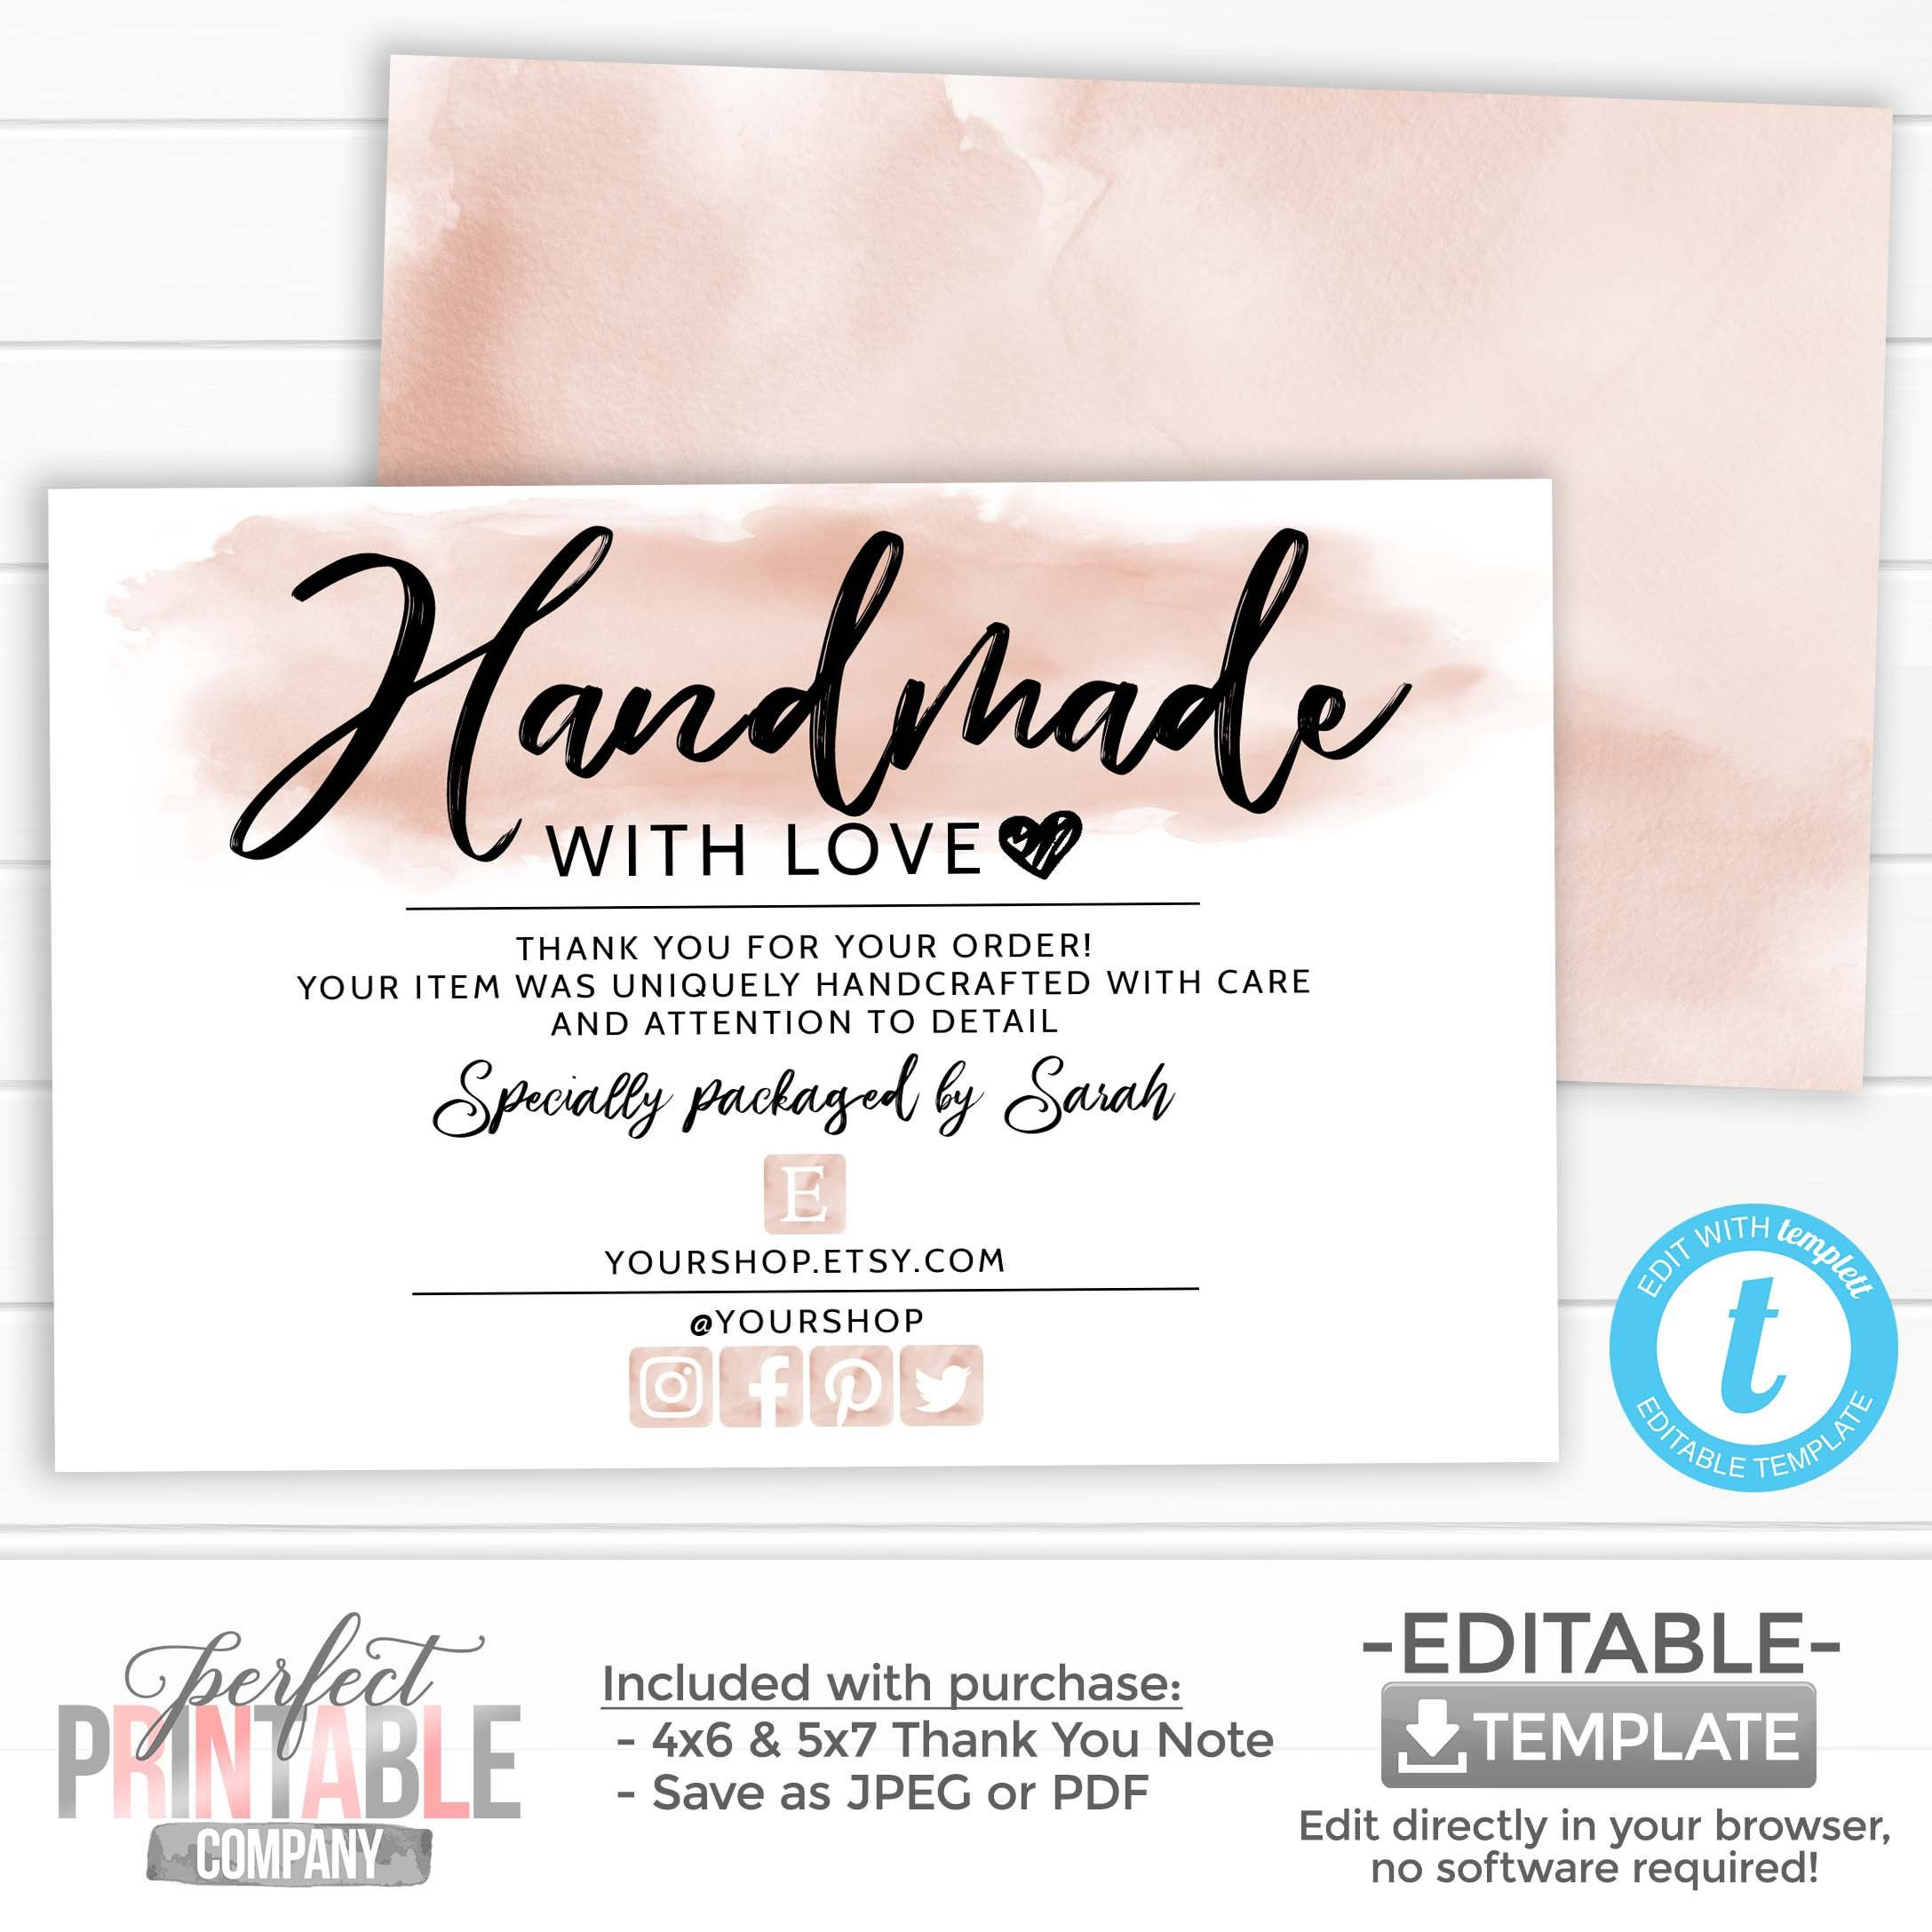 Handmade With Love Card Thank You For Your Order Package Etsy In 2021 Small Business Cards Business Thank You Notes Business Thank You Cards